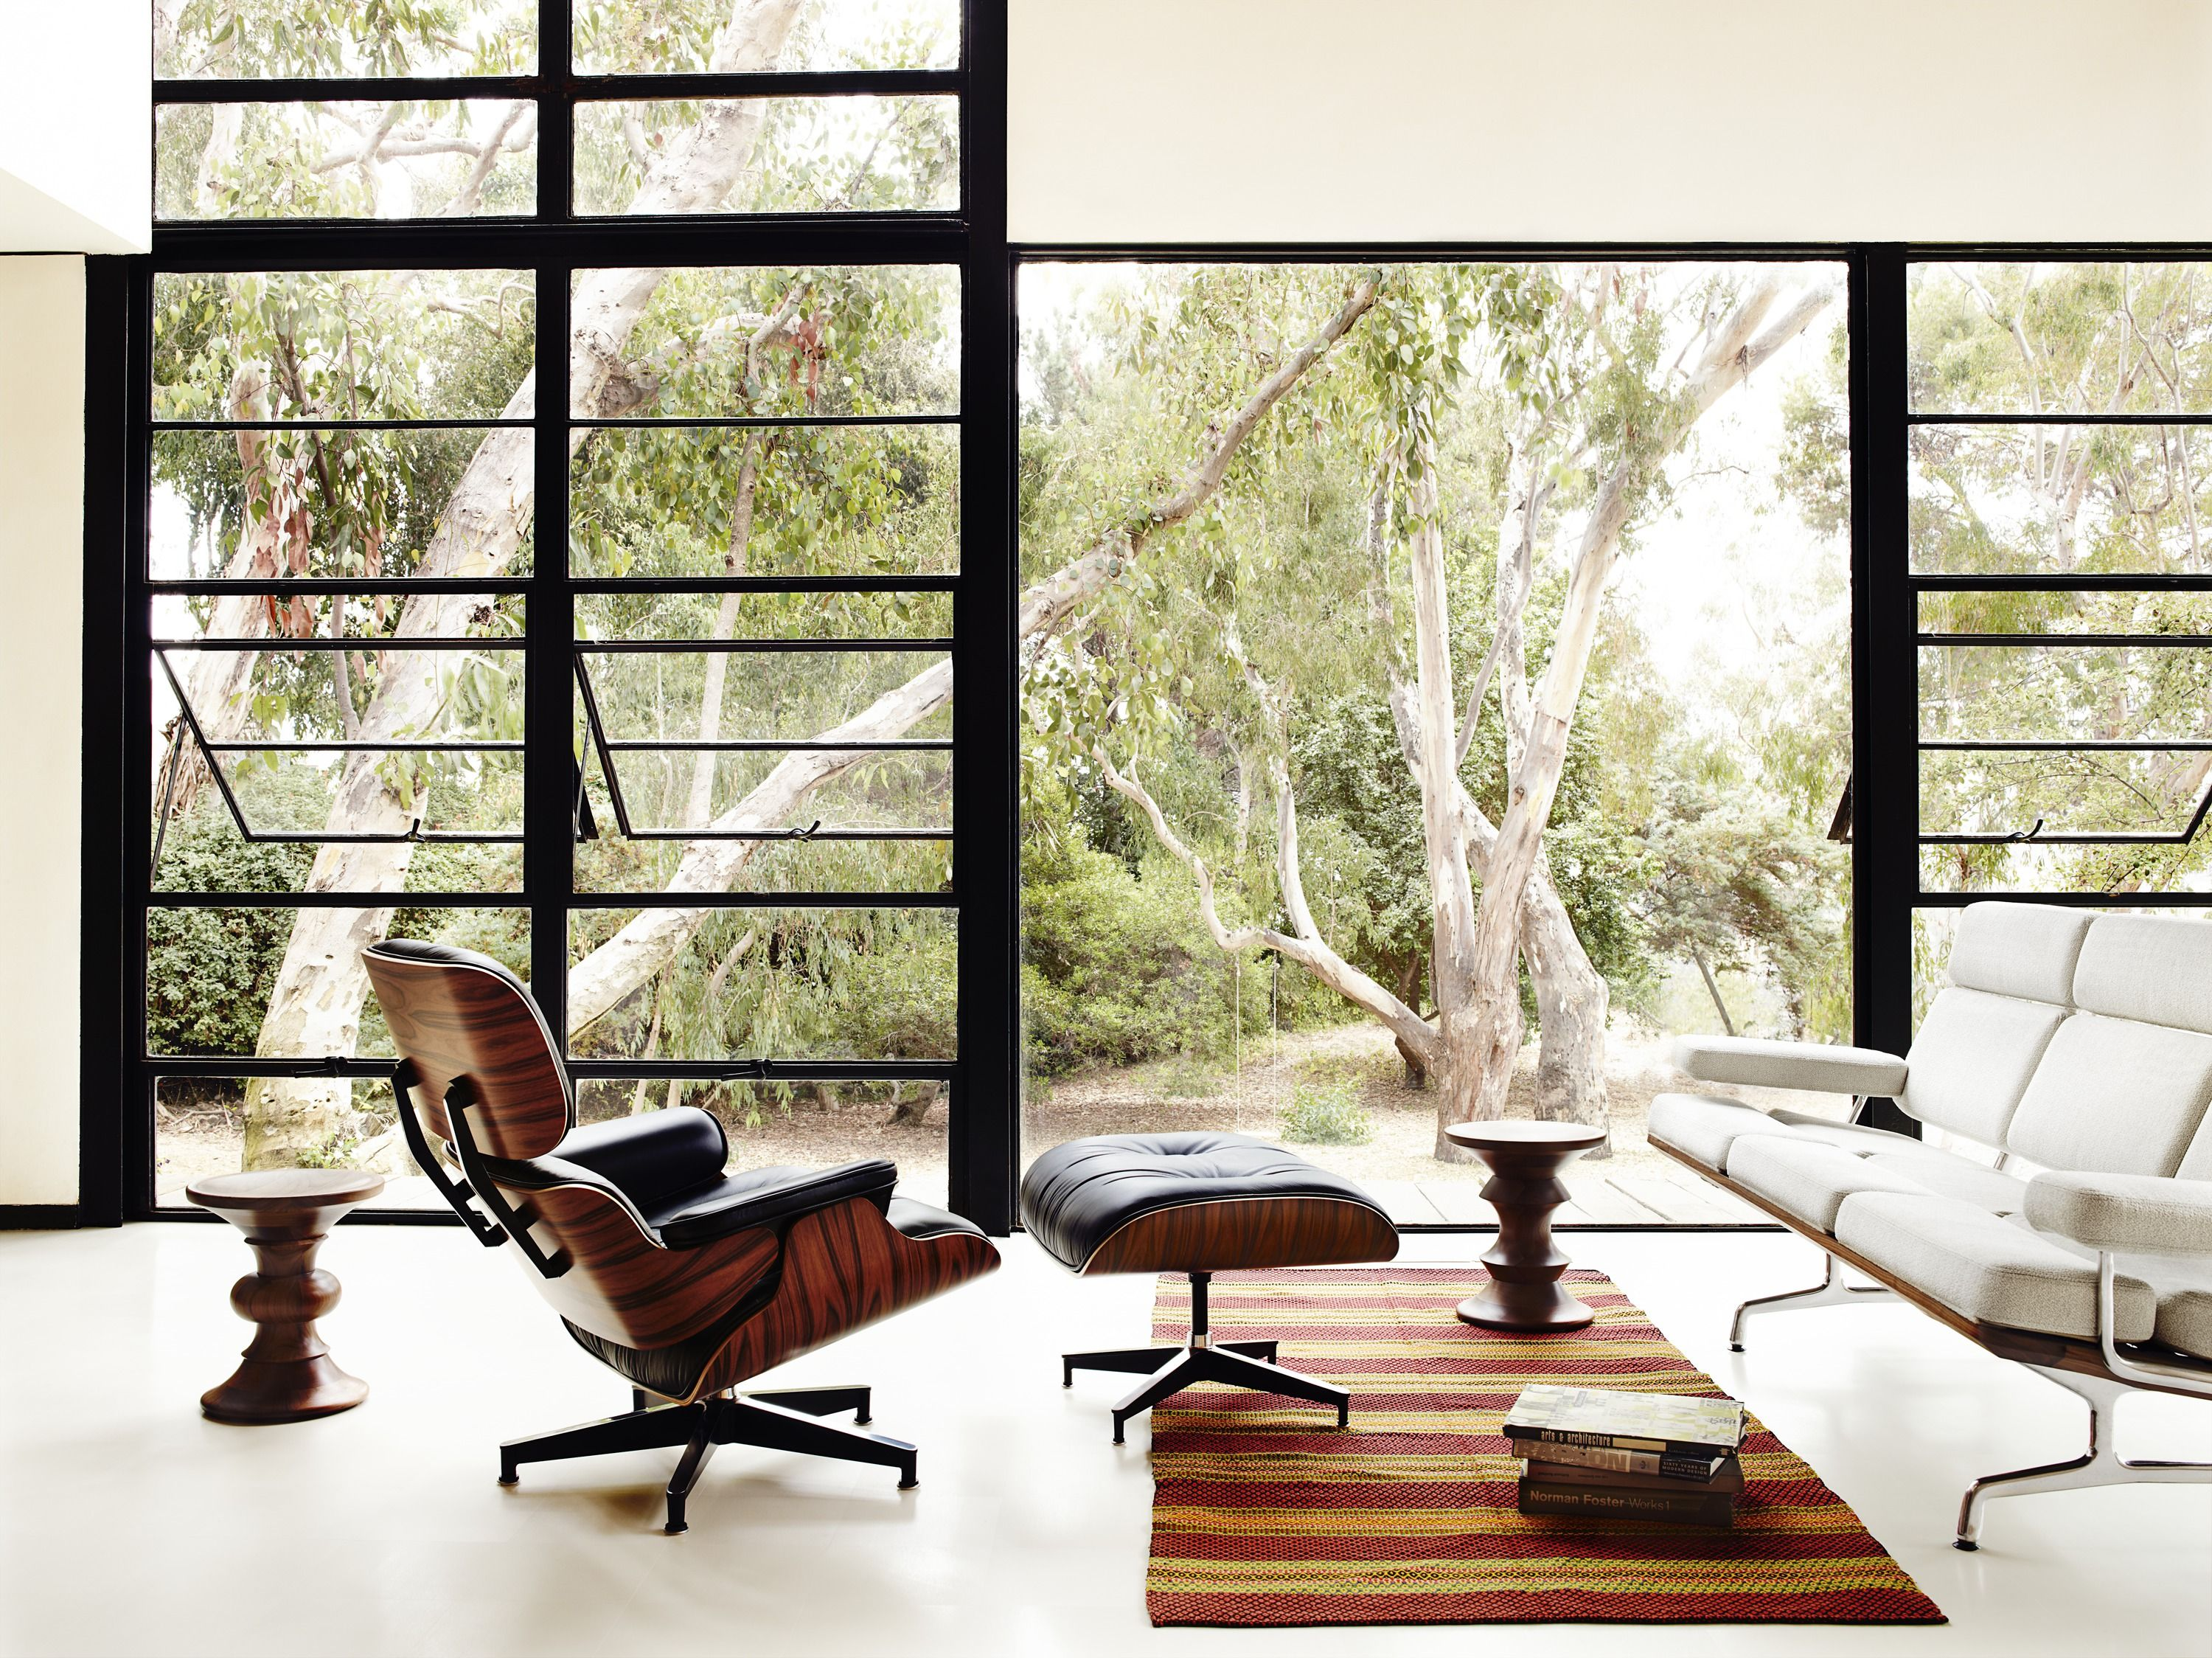 Chair Eames What Is An Eames Lounge Chair? - Eames Lounge Chair Style